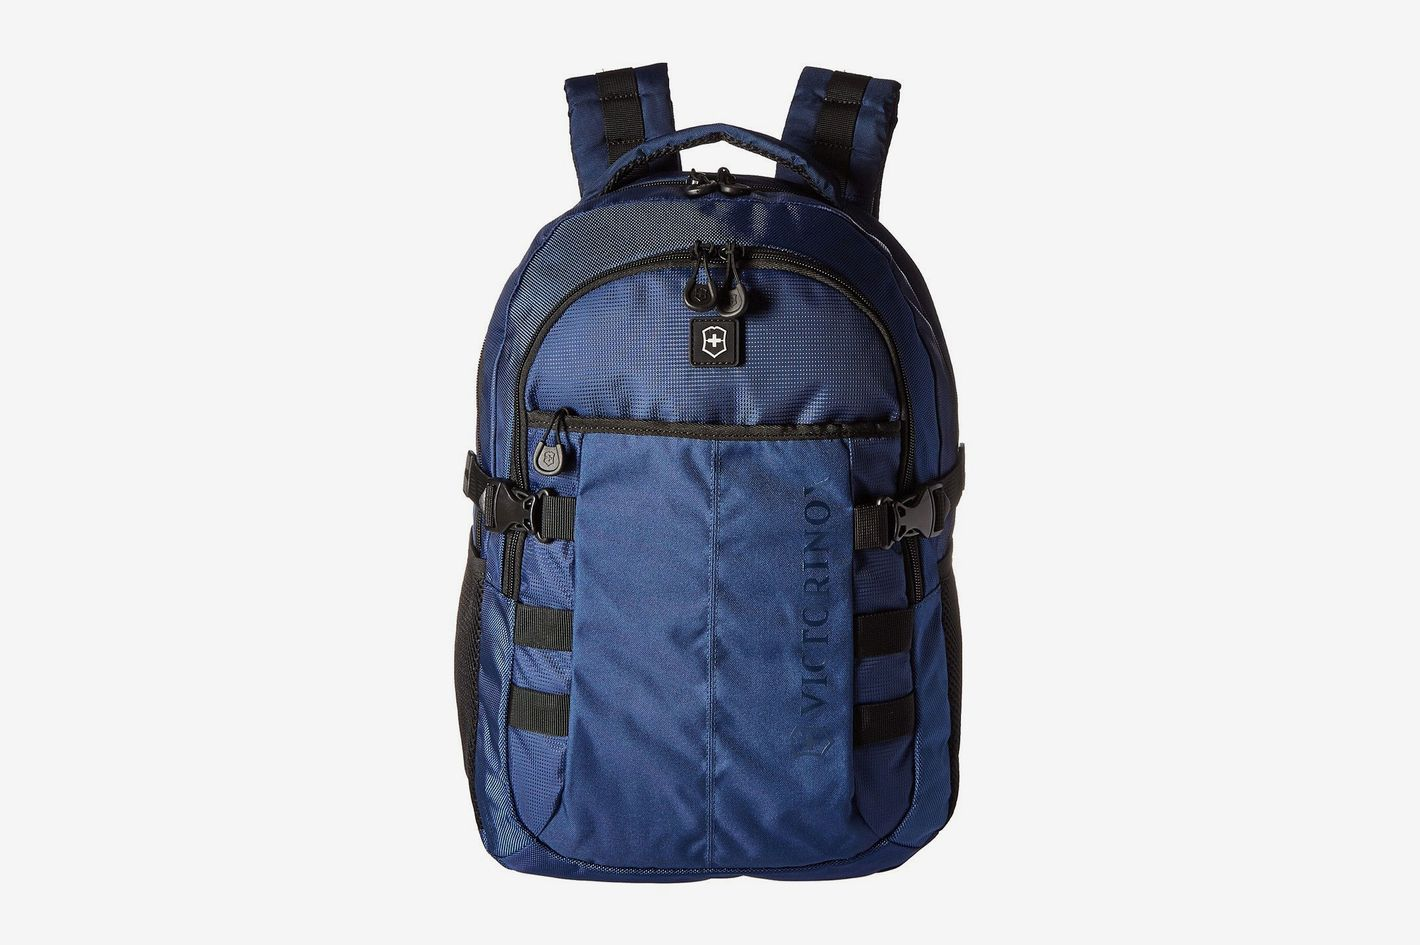 44bd5ff89bed 8 Best Backpacks for College Students 2018